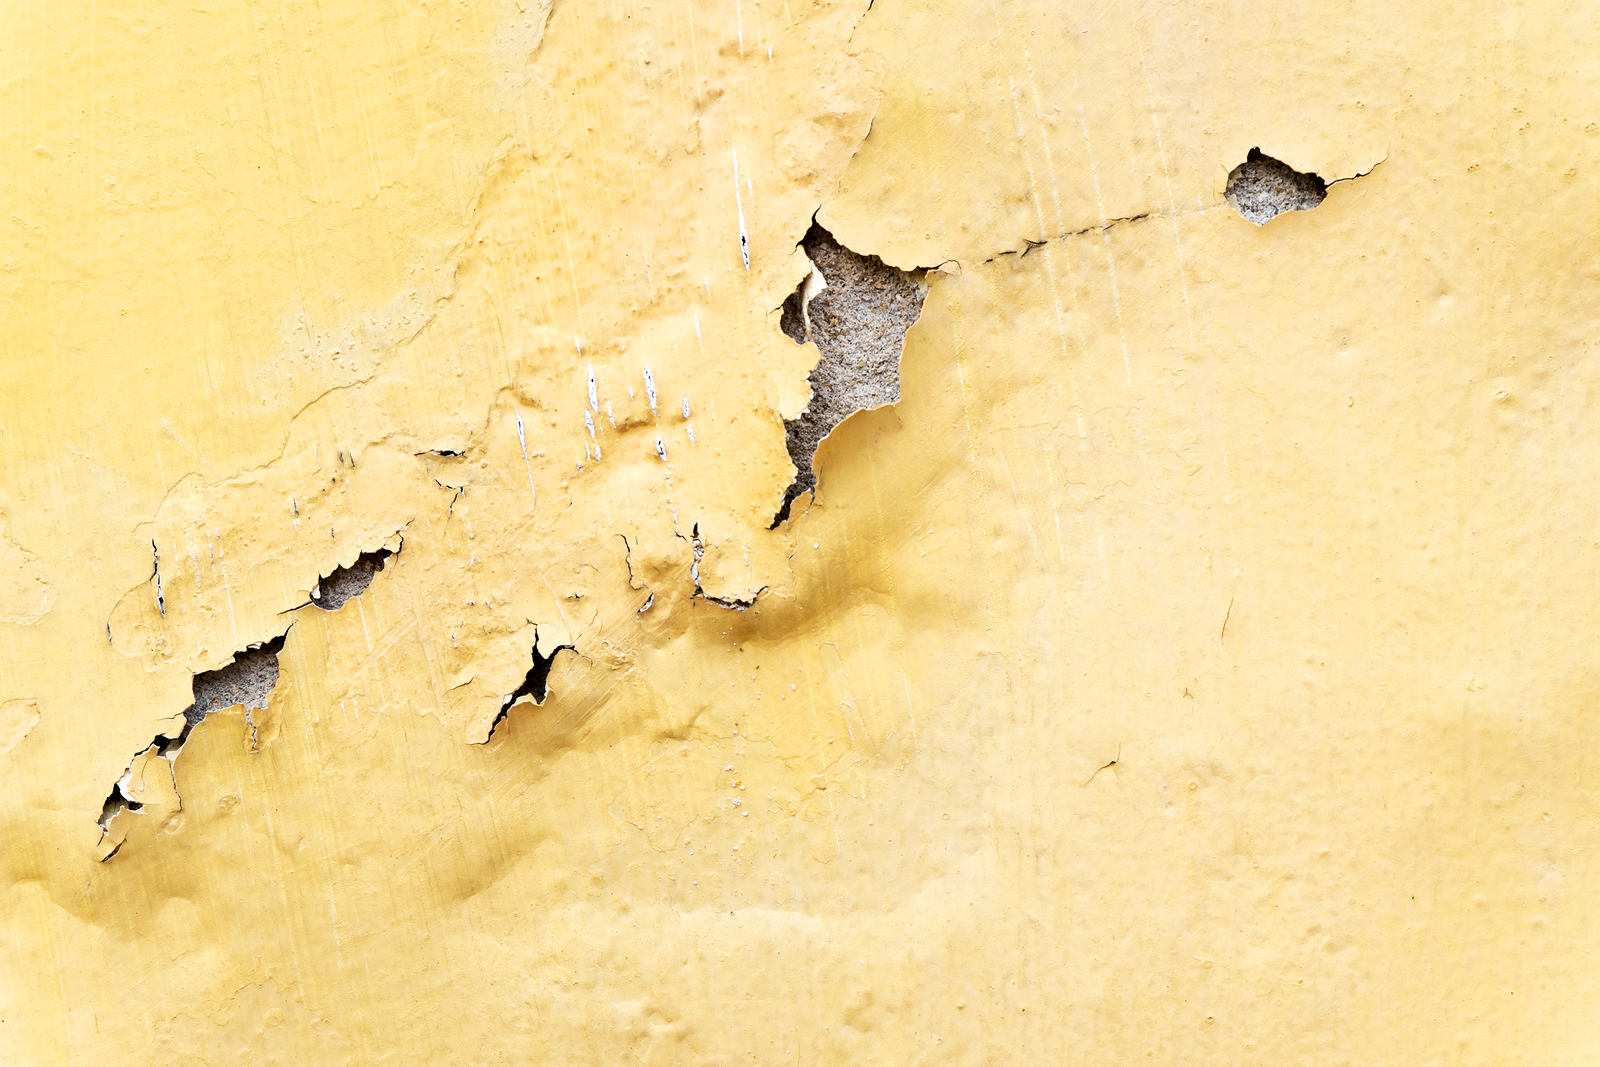 bigstock-Yellow-Erode-Painted-Concrete--139545332